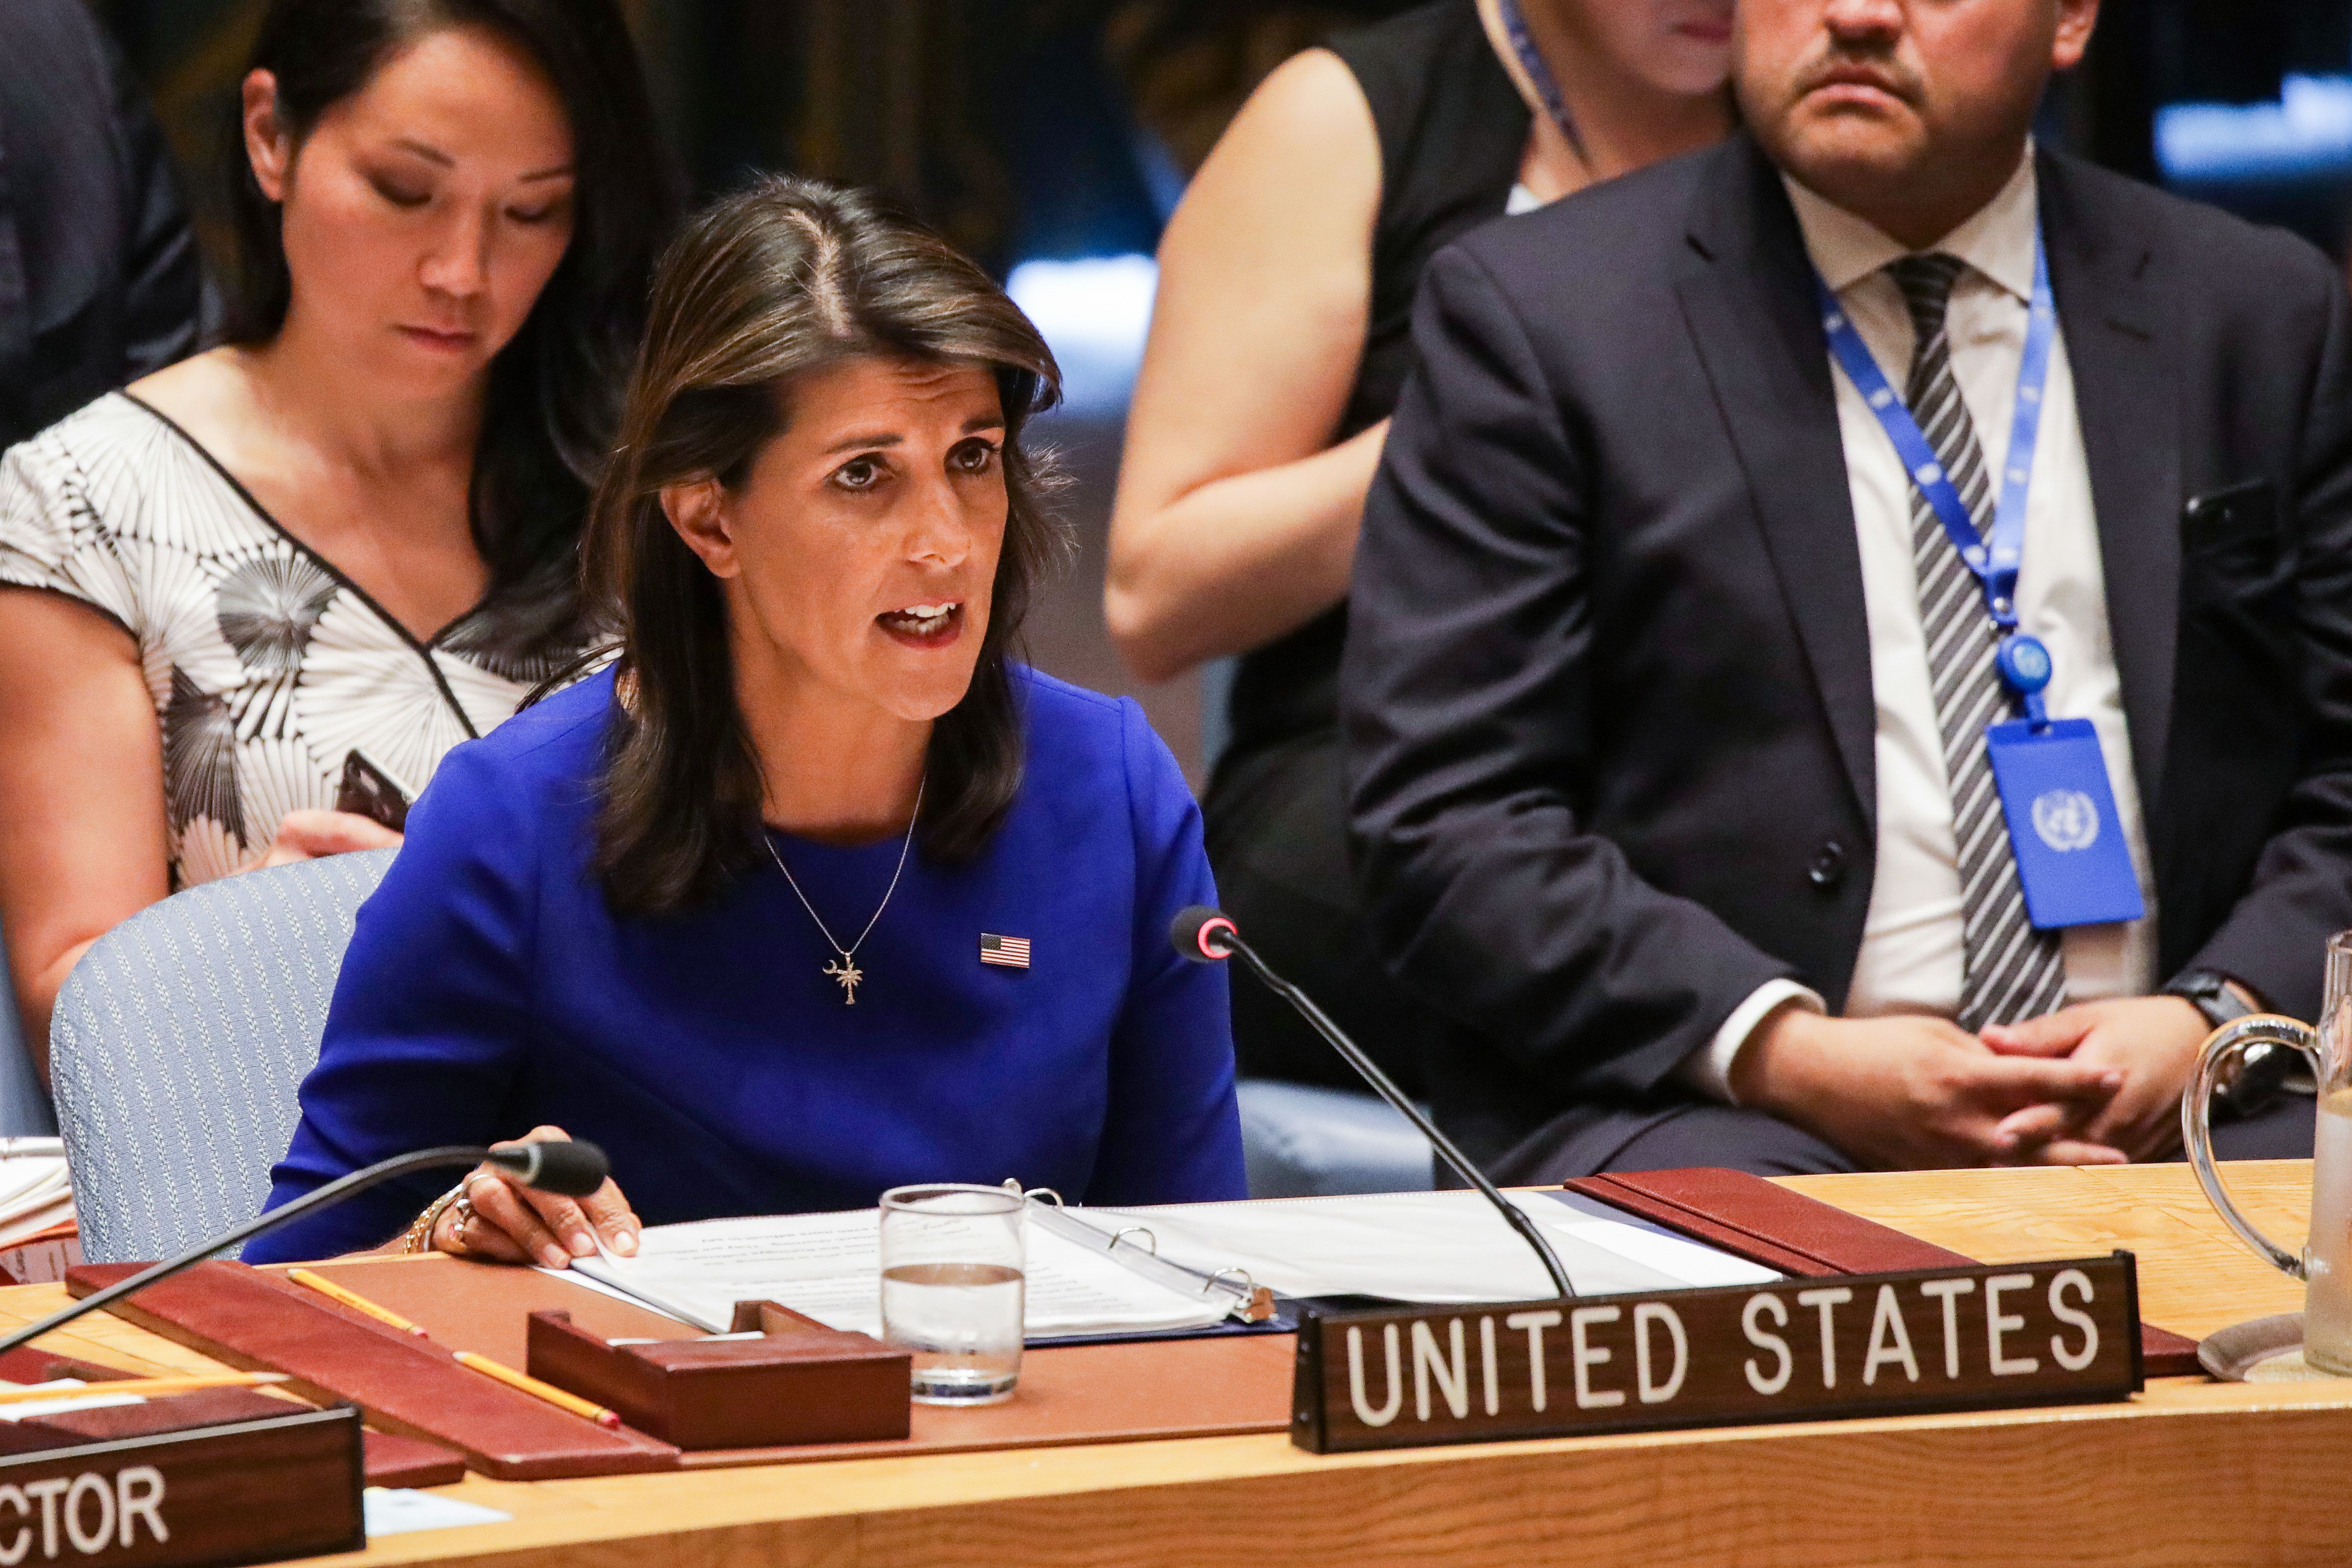 United States ambassador to the UN Nikki Haley speaks during a United Nations Security Council meeting on the situation in Myanmar at UN Headquarters in New York on August 28, 2018. DOMINICK REUTER/AFP/Getty Images